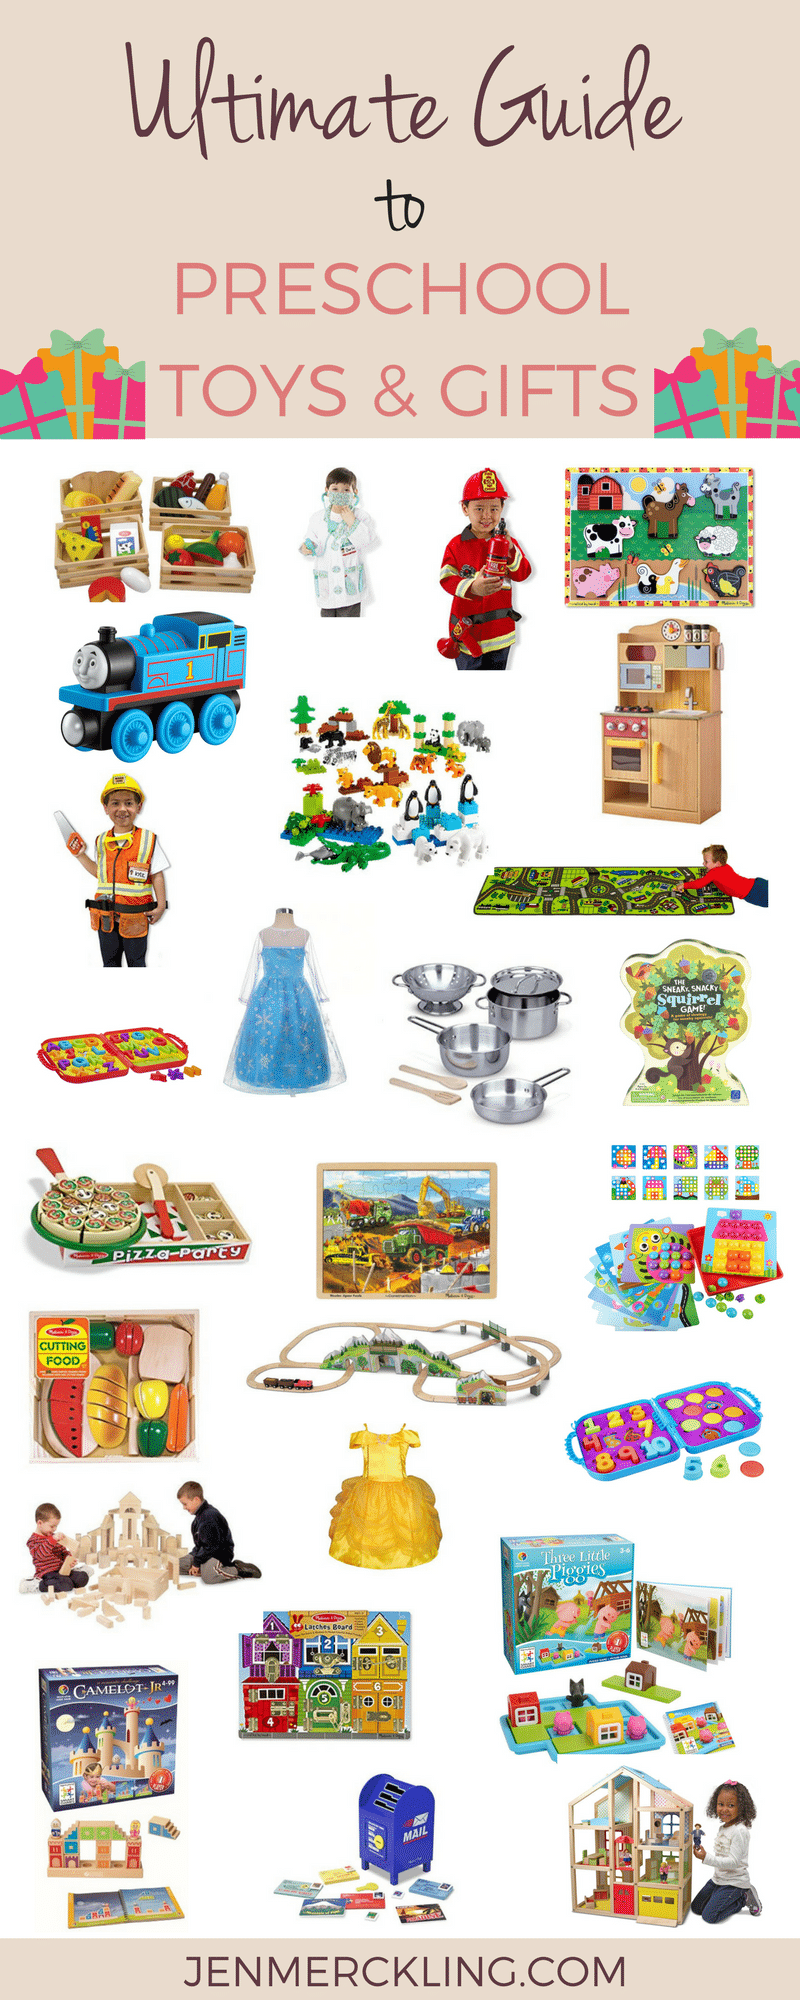 The ultimate guide to preschool toys. Find the perfect gifts to encourage imaginative play, motor skills, and cognitive development.